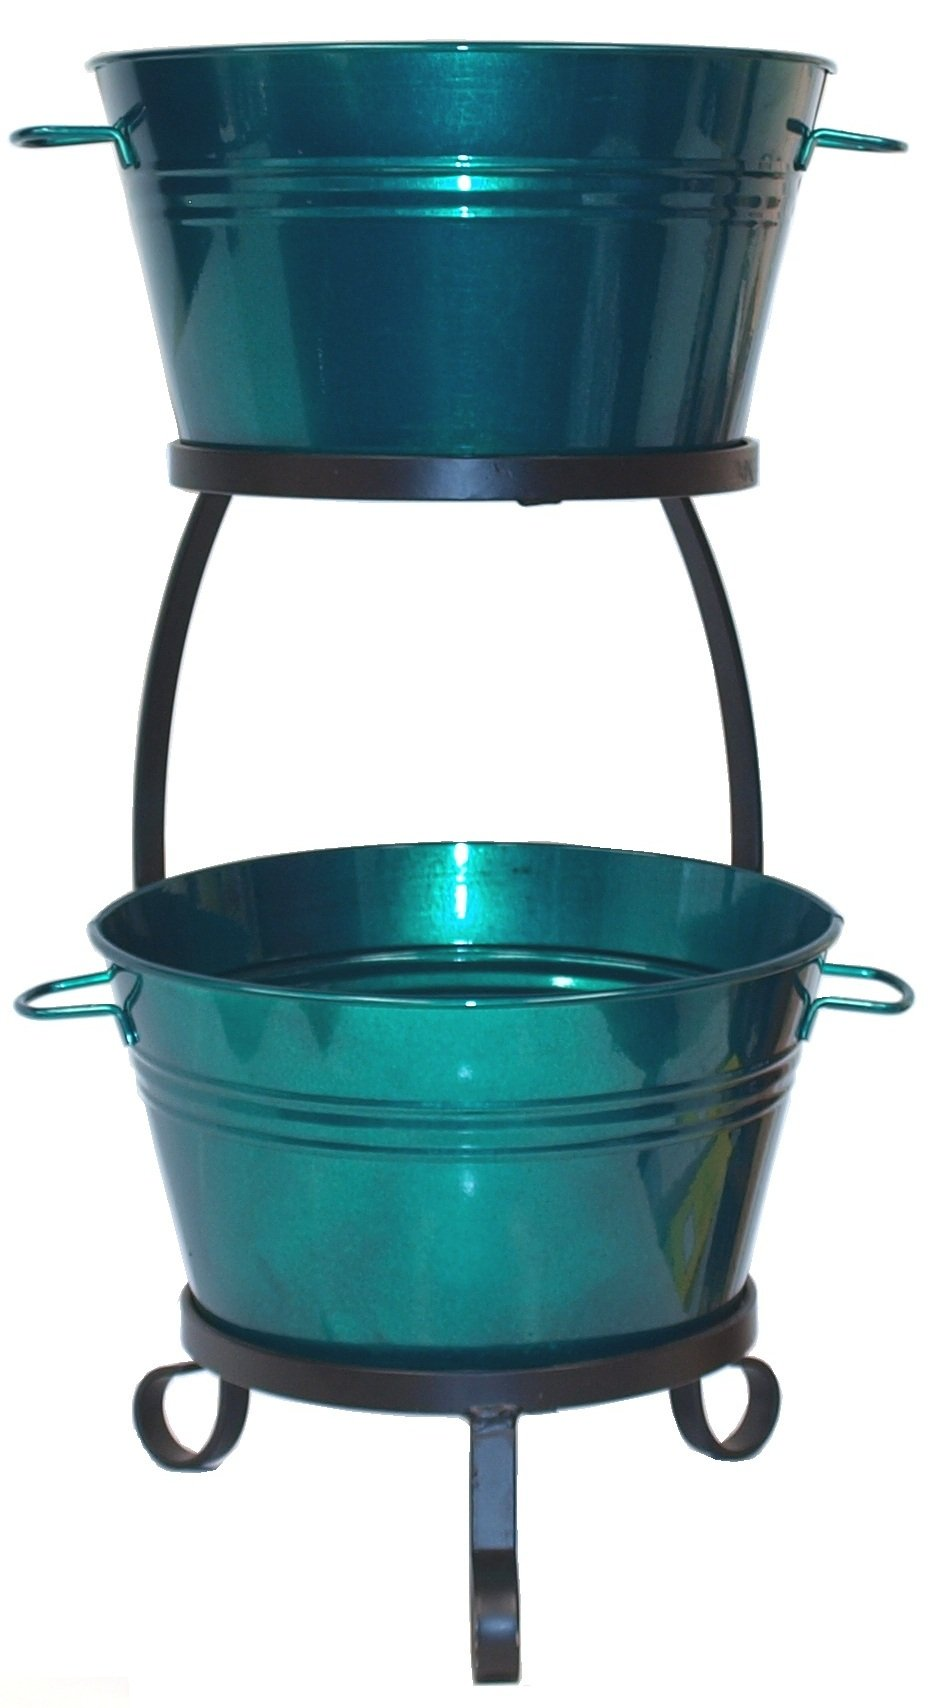 HIT 8020E GG Galvanized Heavy Gauge Steel Beverage Tub with Iron Stand, 13.5 by 30-Inch, Glazed Green